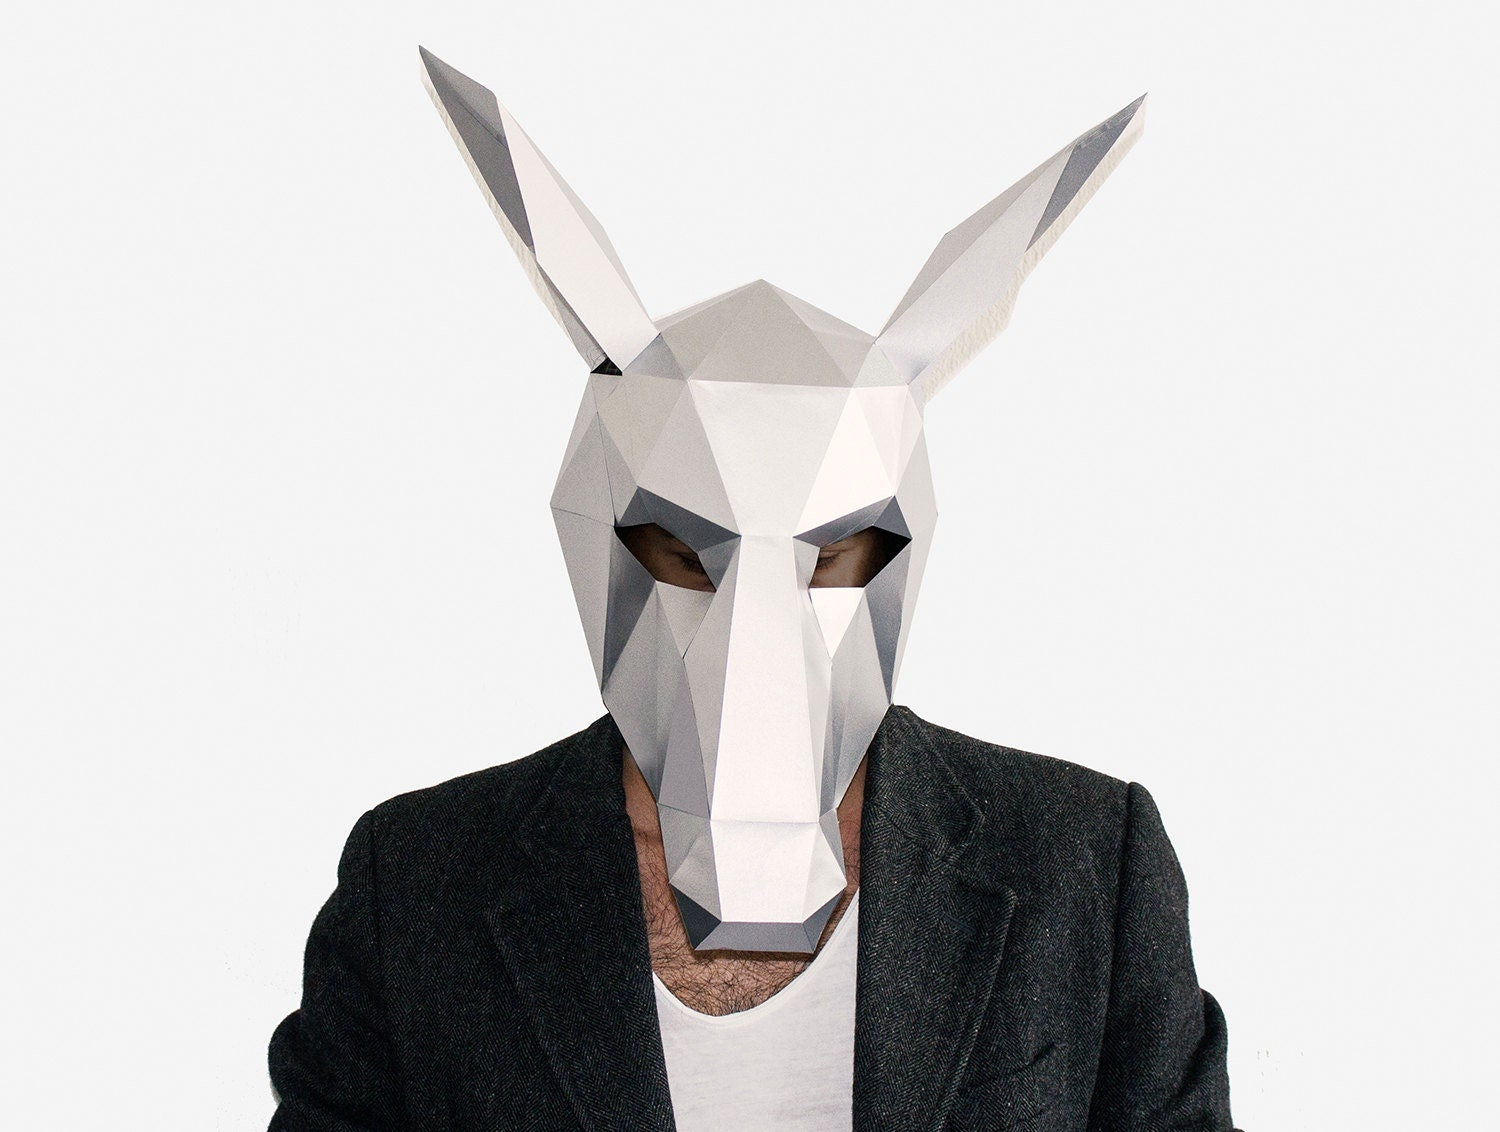 Comfortable 10 Commandment Coloring Pages Tall 100 Bill Template Clean 100 Dollar Bill Template 11 Vuze Search Templates Youthful 15 Year Old Resume Example Bright17 Year Old Resume Sample Donkey MaskDIY Printable Animal Head Instant Pdf Download